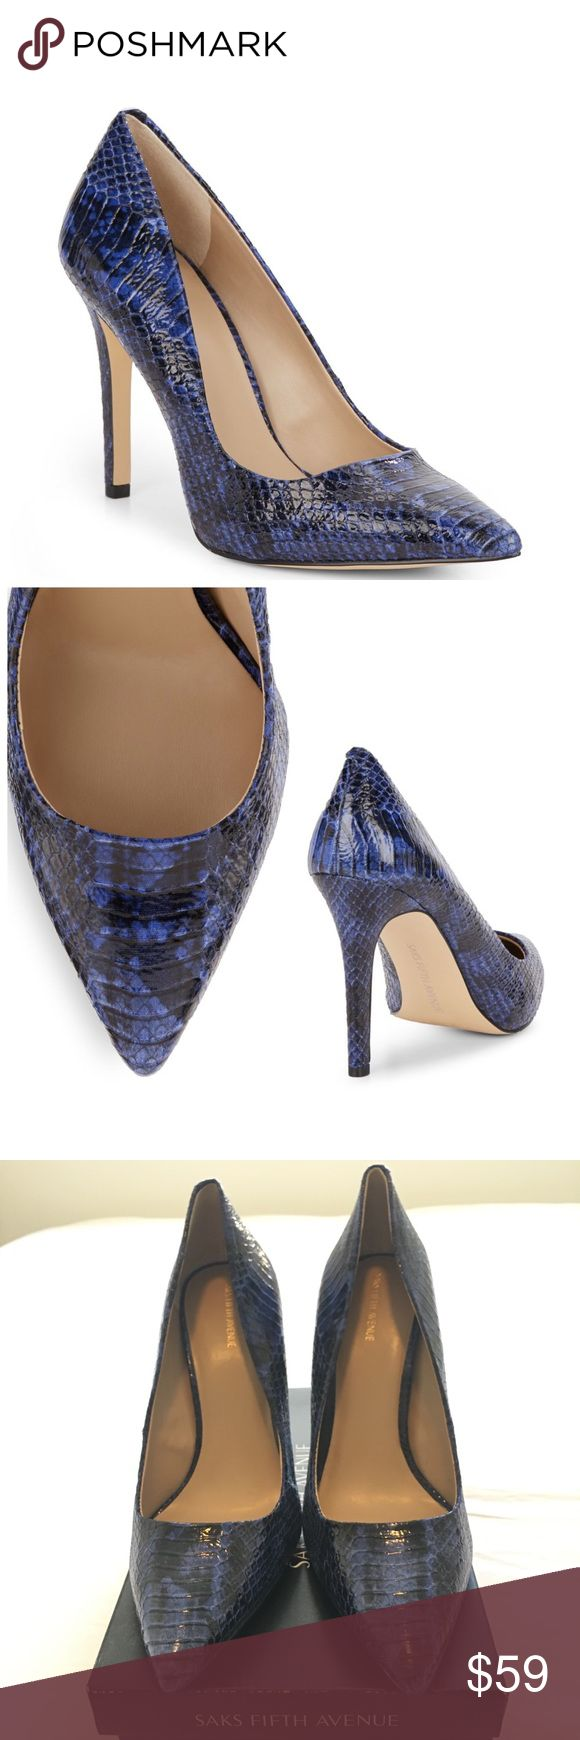 "NEW! Saks Fifth Avenue Cathy Snakeskin Pump Saks Fifth Avenue Cathy Snakeskin Pump DETAILS:  Size: 10 Heel: Approx. 4"" (100mm)  Color: Multi color (blue/black or very dark blue)  Material: Man made.  Snakeskin print.   Condition: Never worn/NWT includes box.  NOTE - everything in my closet is 100% authentic.  Open to offers. I always respond with my best and final. Please feel free to ask questions.  All sales are final. Saks Fifth Avenue Shoes Heels"